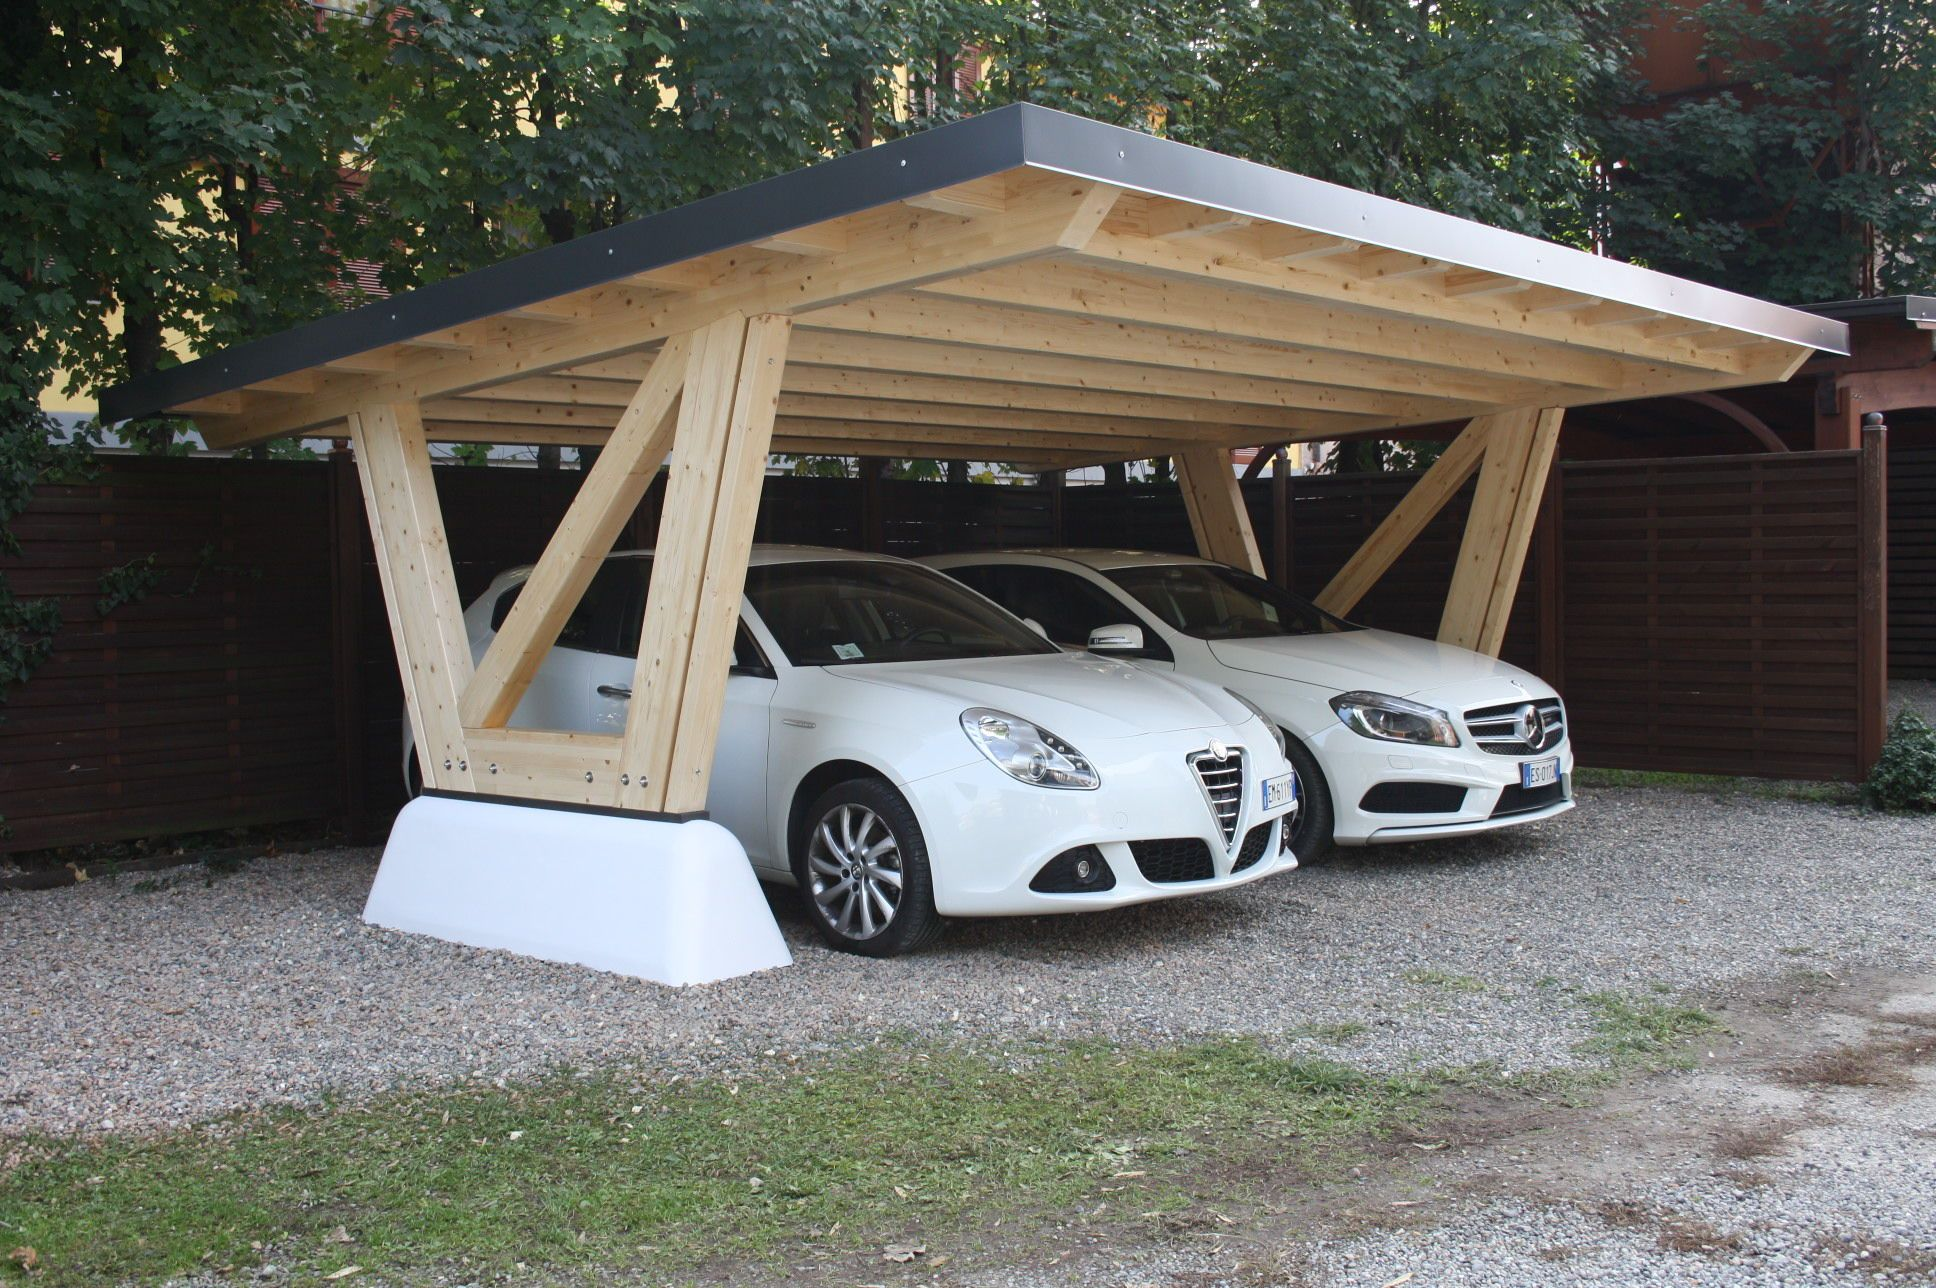 Concrete Carport Wooden New York Gazebodesign Proiecte Renovare Cabane Rustice Design Case